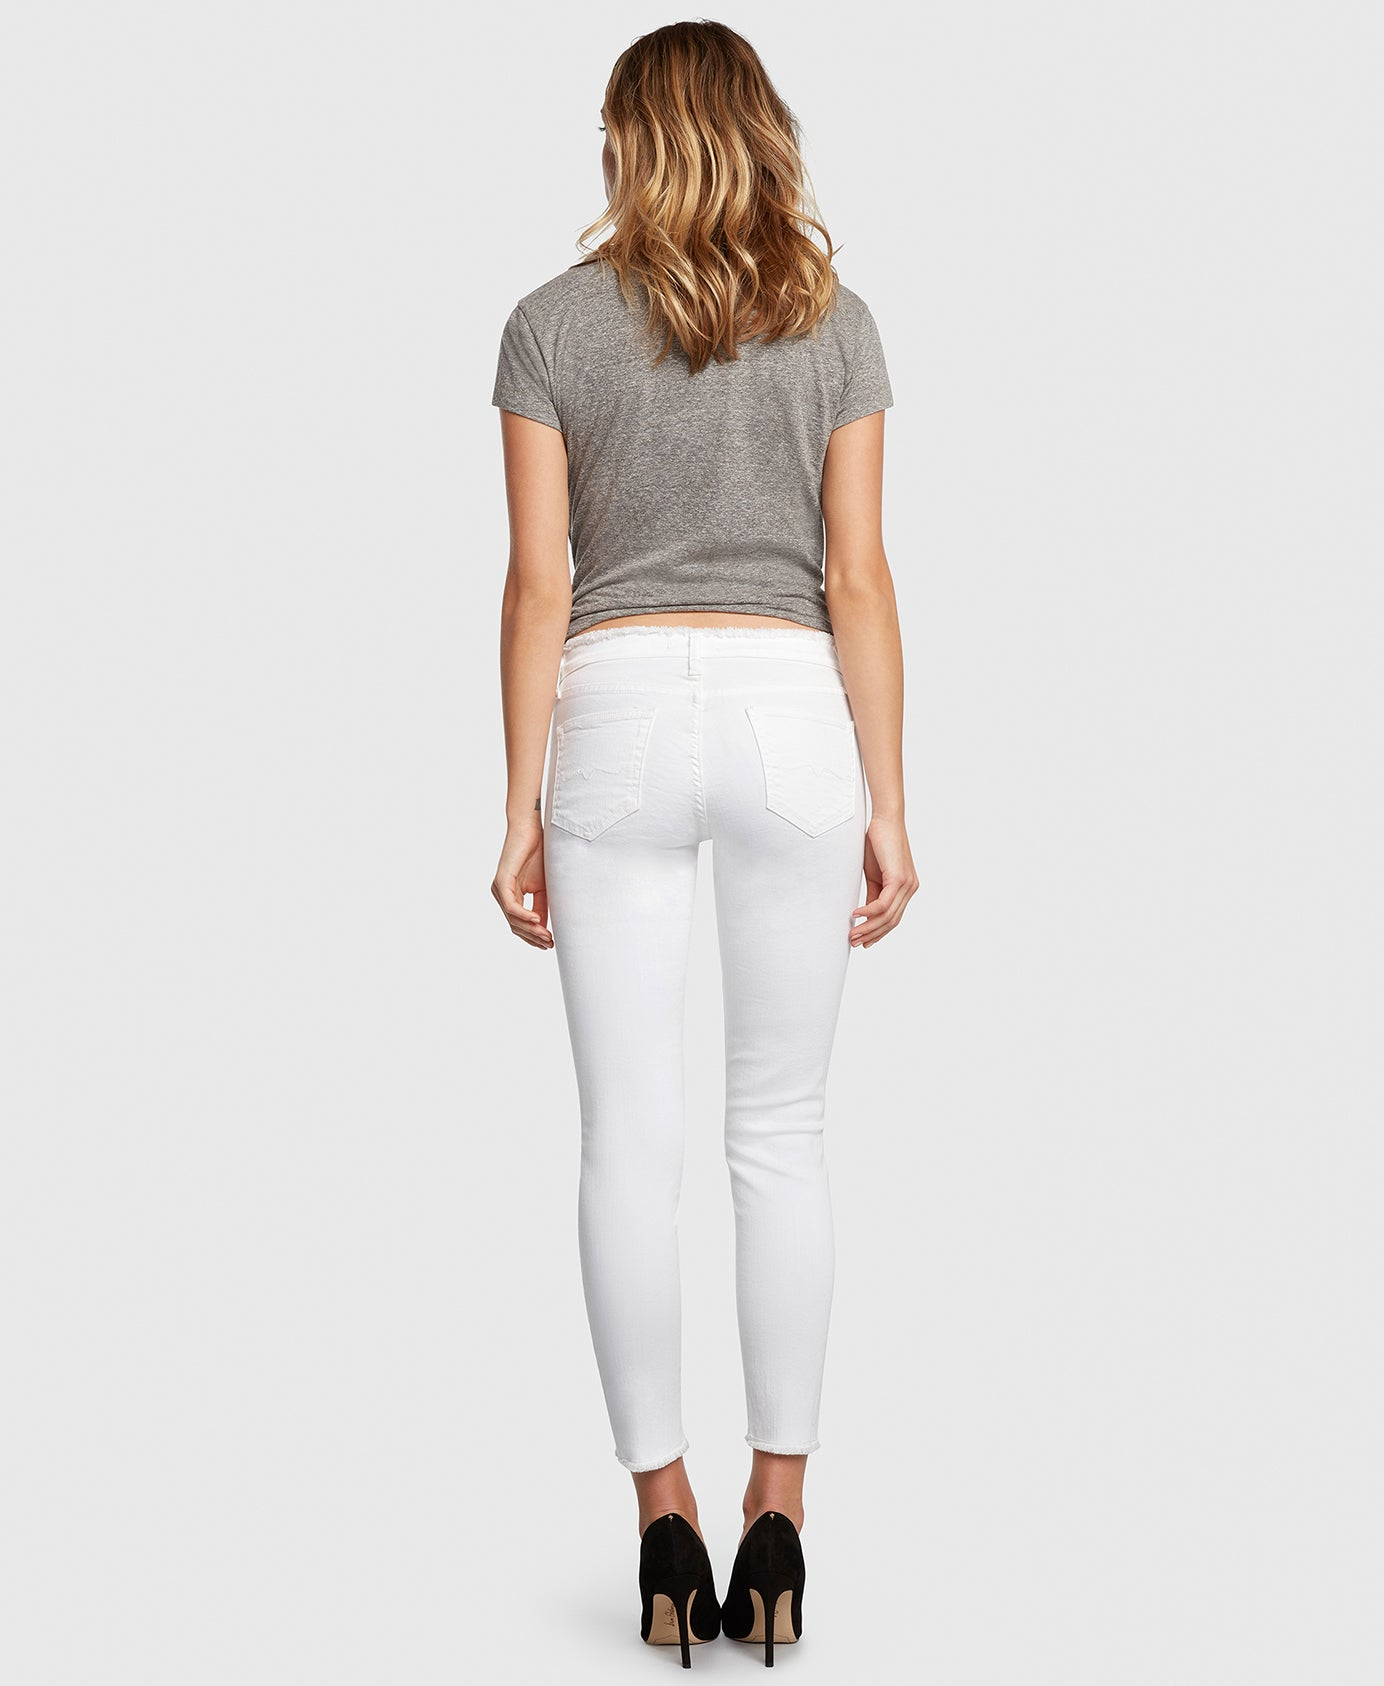 Principle DREAMER in White Tripper raw edge jeans back